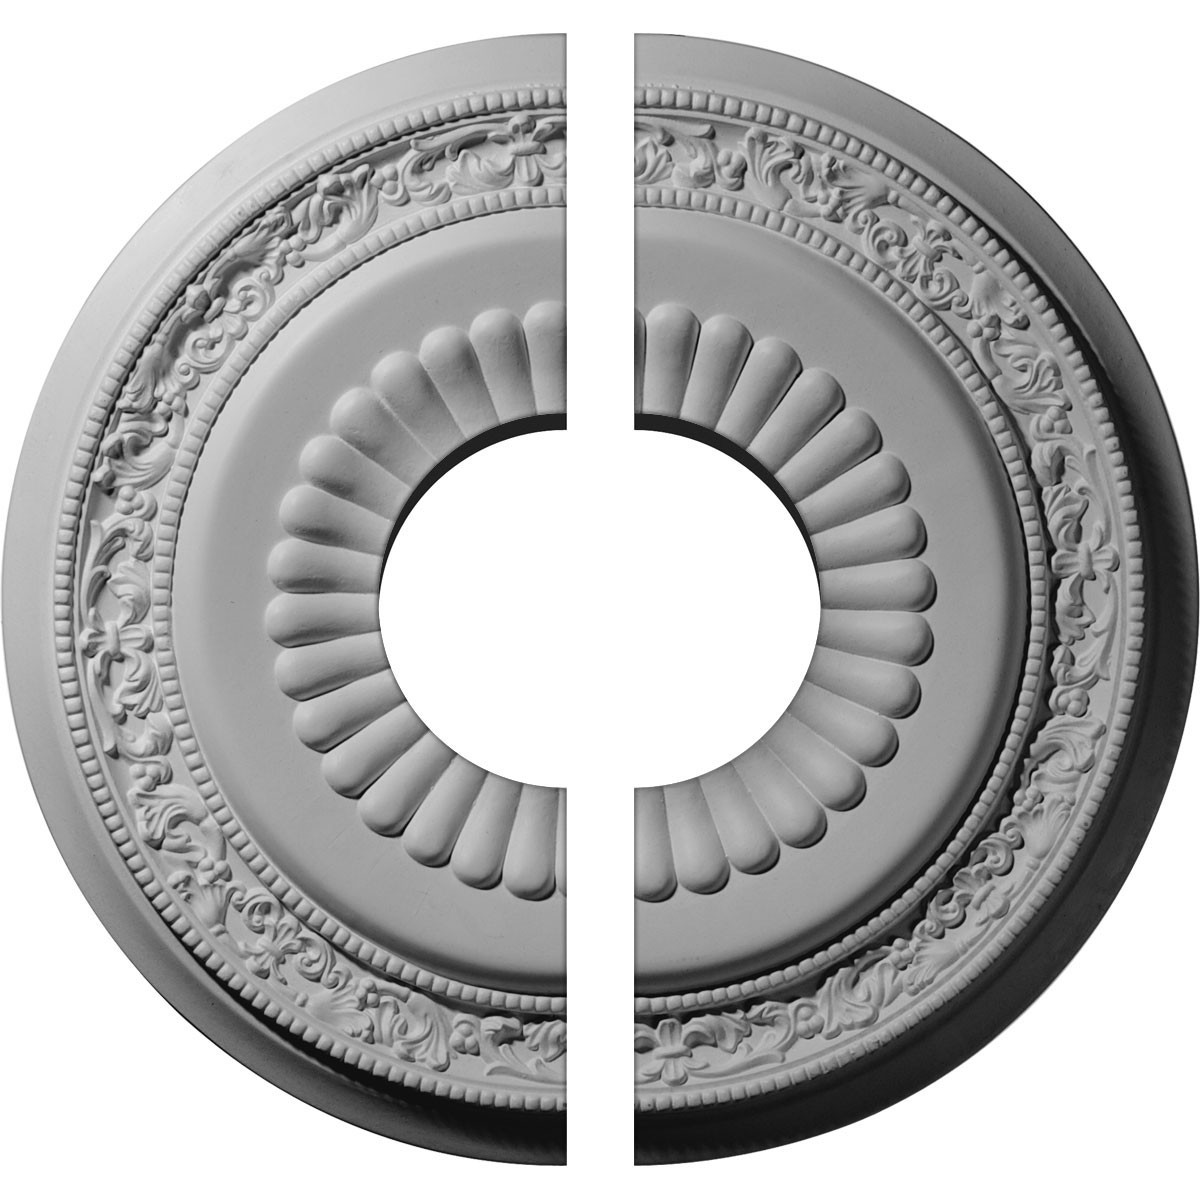 "EM-CM20LN2 - 20 5/8""OD x 6 1/4""ID x 1 3/8""P Lauren Ceiling Medallion, Two Piece (Fits Canopies up to 6 1/4"")"